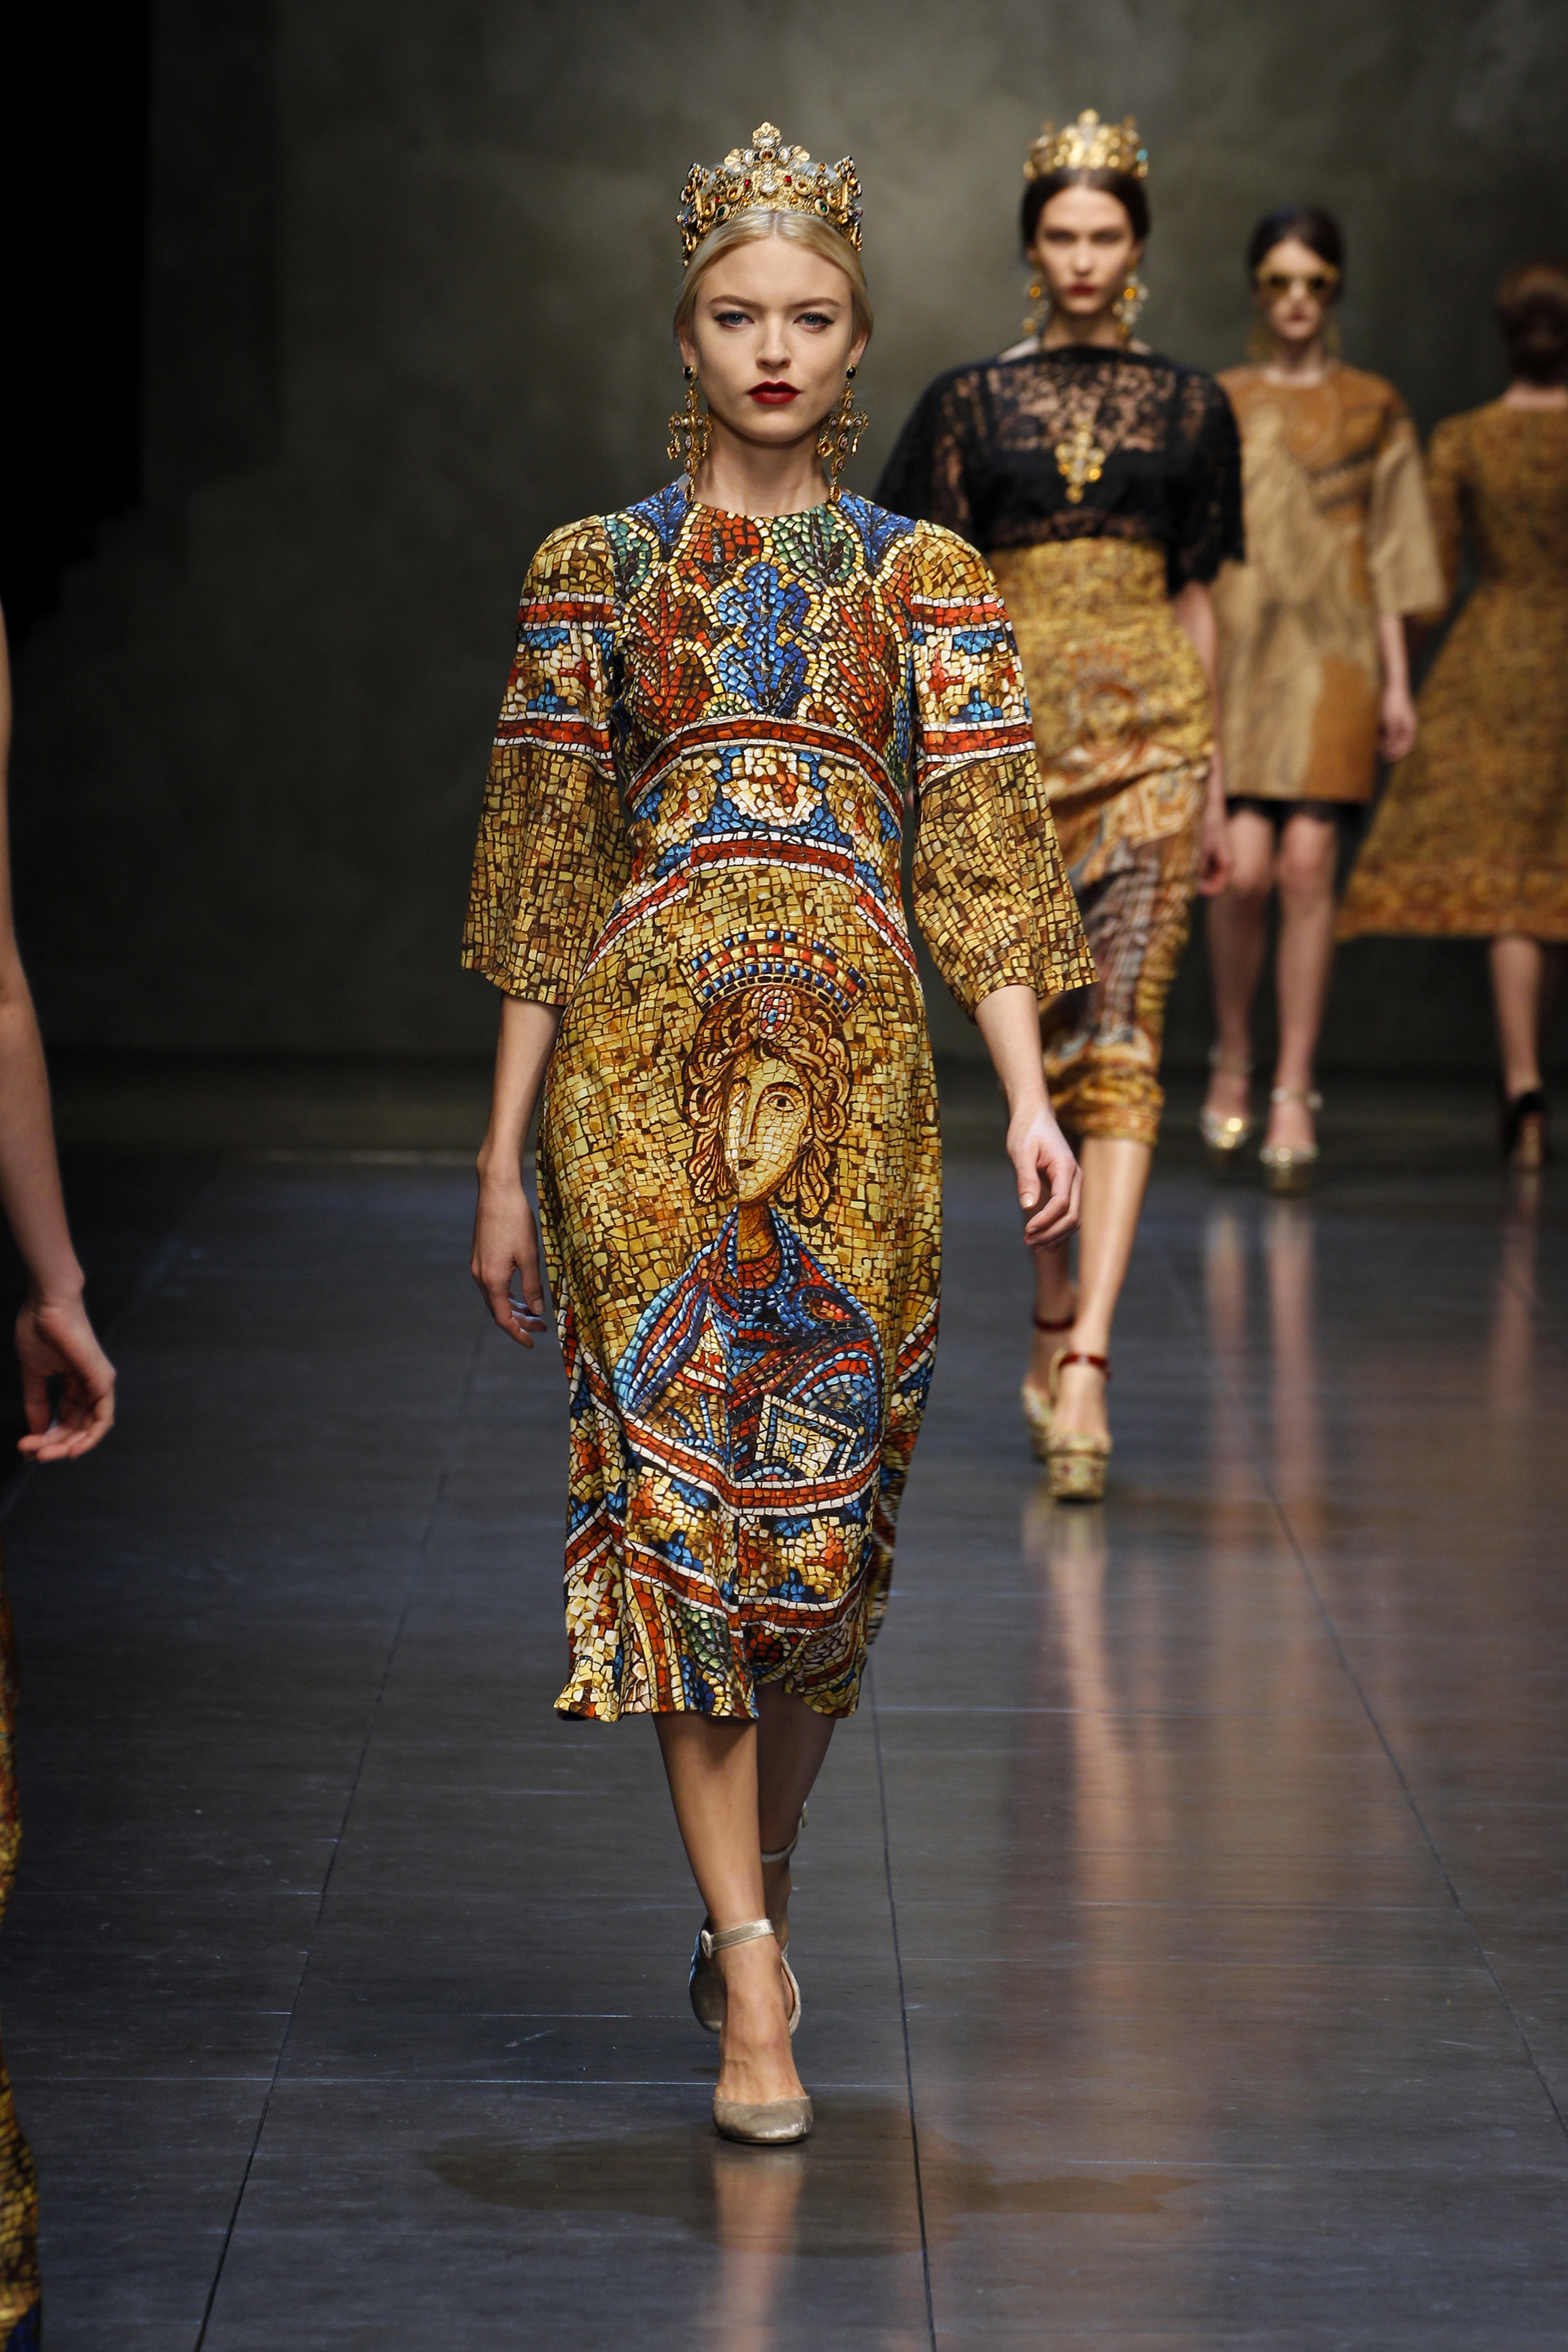 2014 Fashion Trends For Teens 2014 2015: Dolce And Gabbana Fall/Winter 2013/2014: Religion And